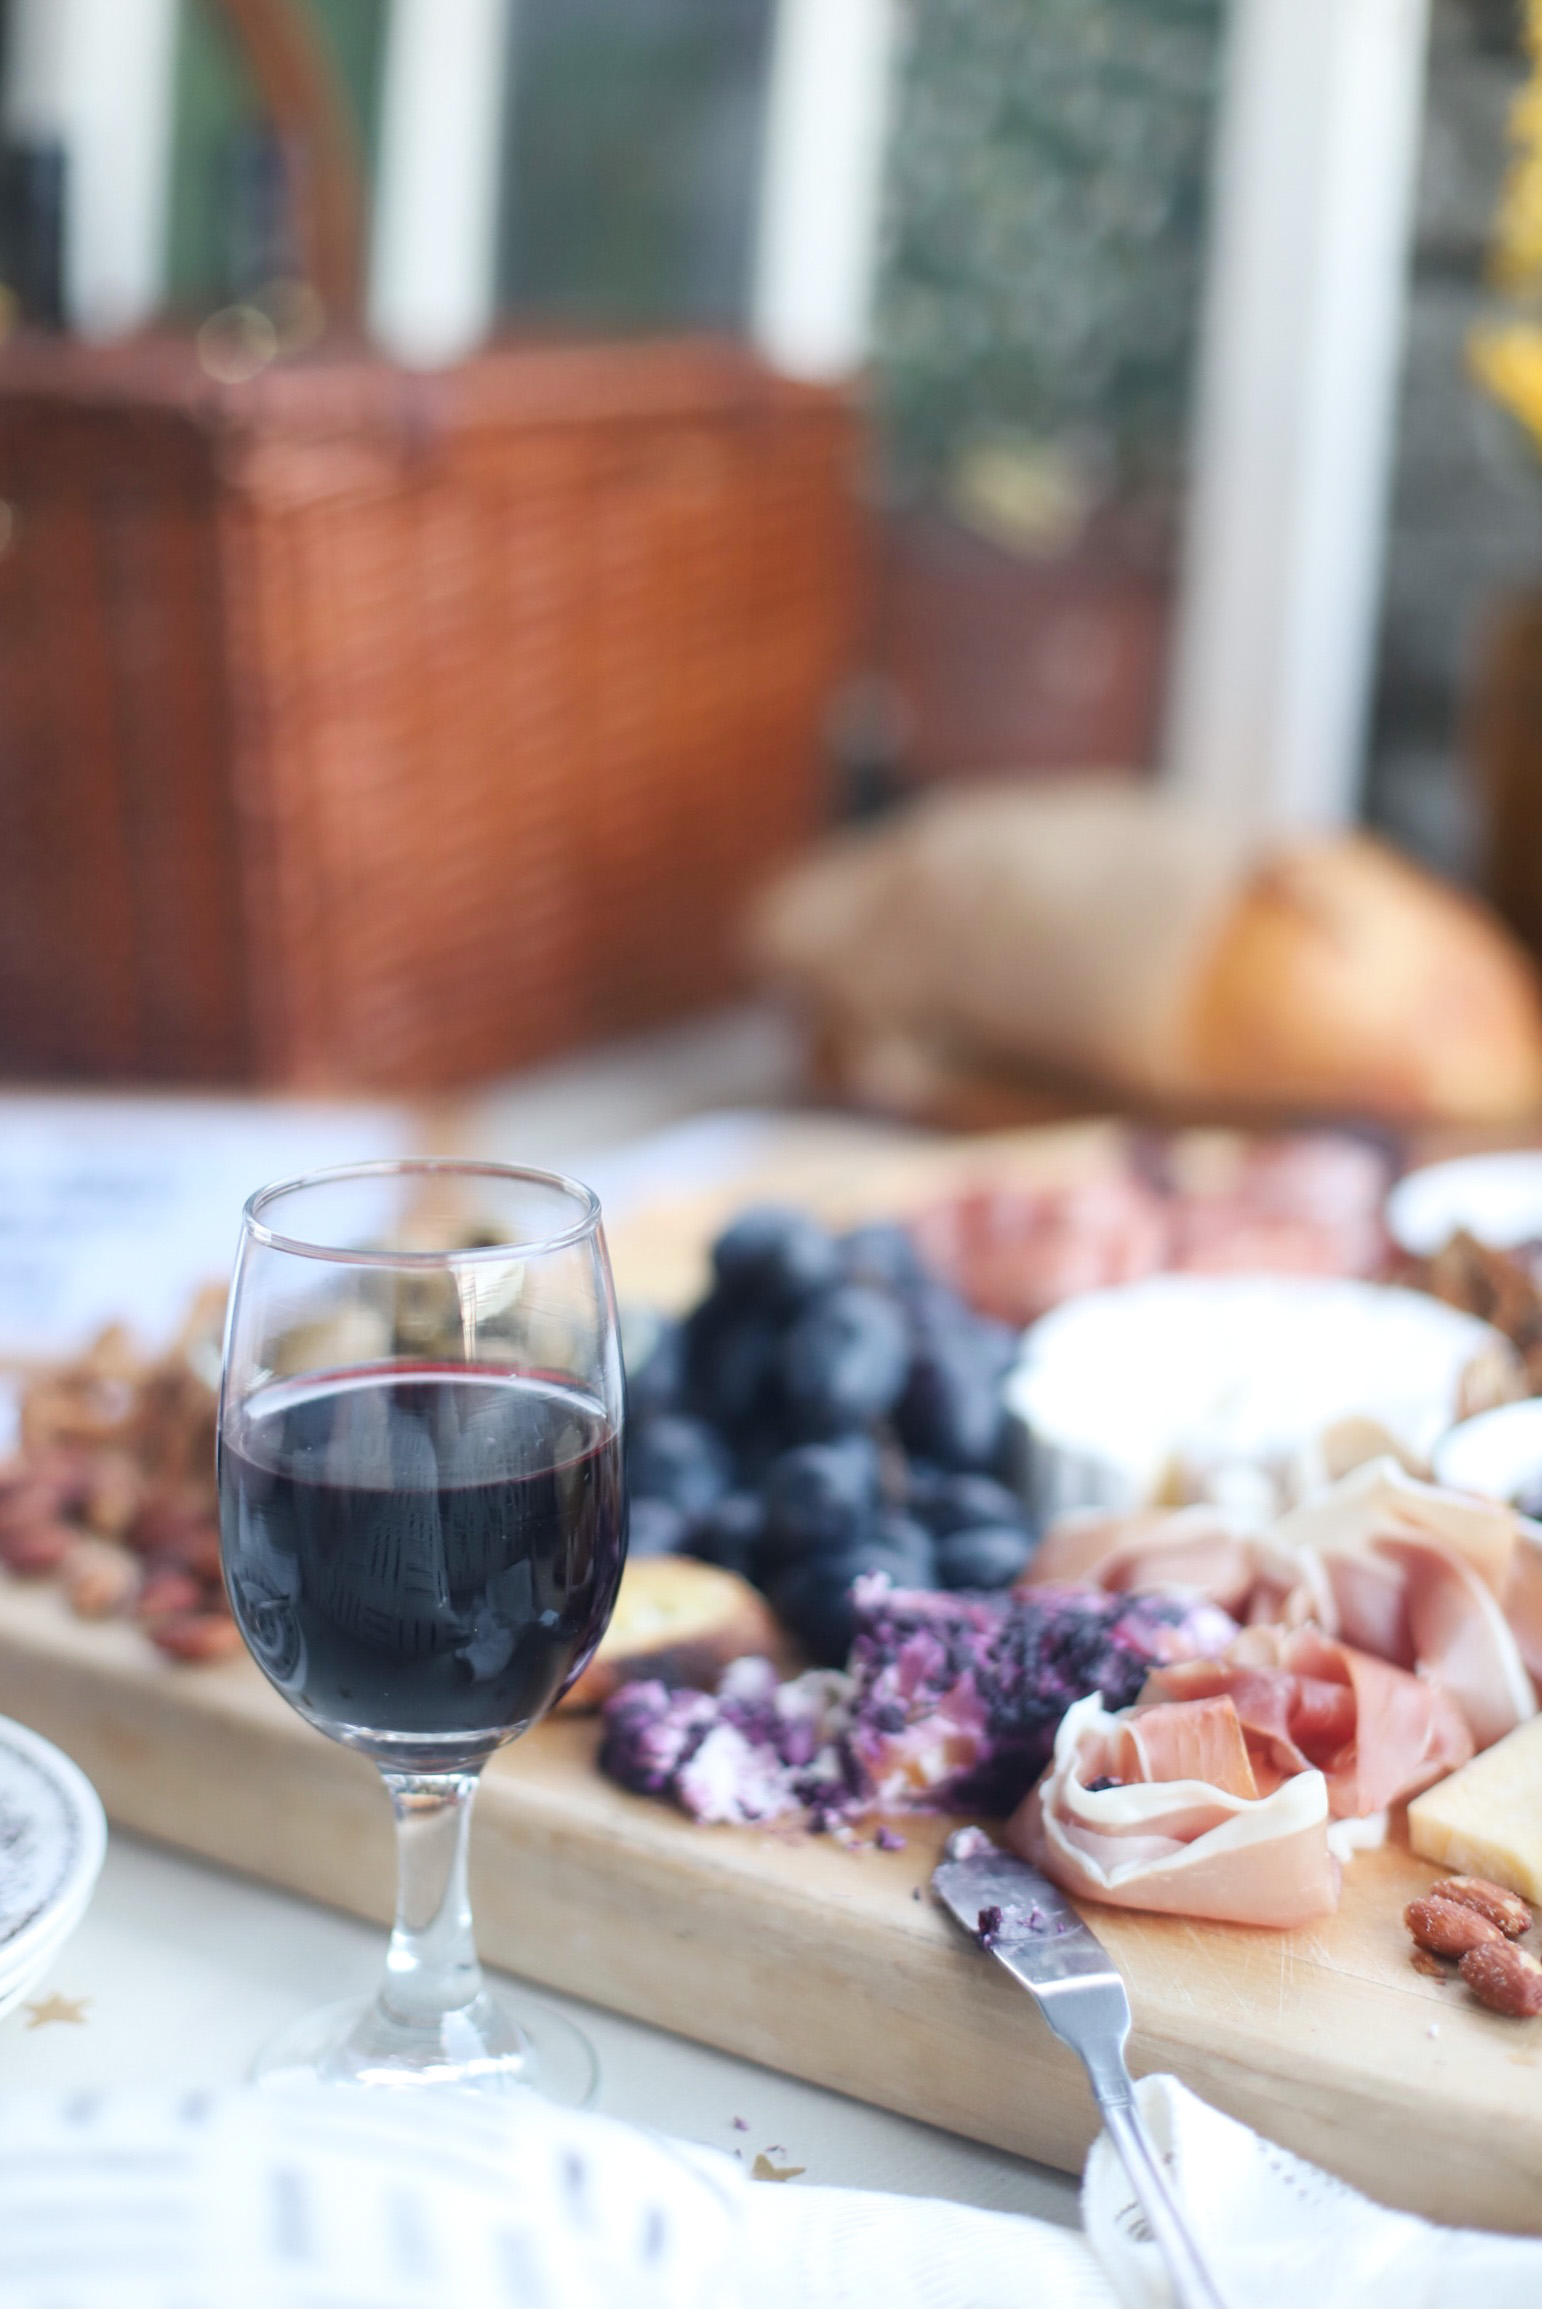 a glass with wine and a Charcuterie board